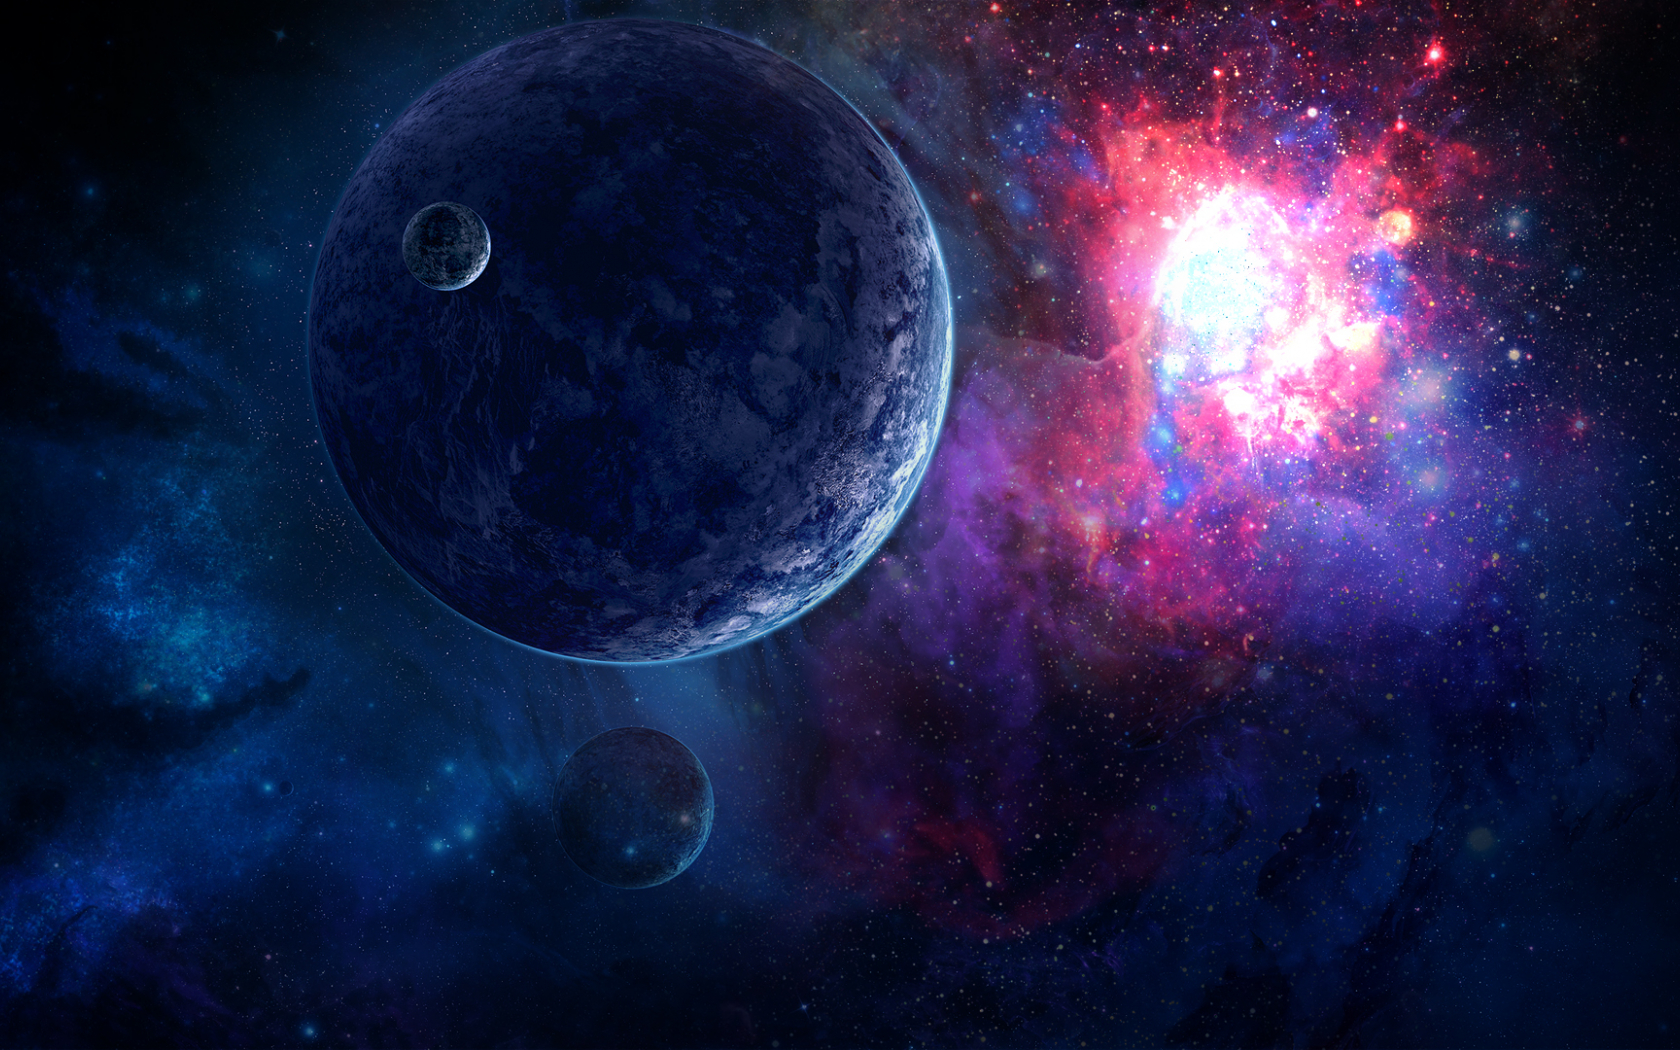 Free Download Wallpapers Planets Space Tumblr 1920x1080 For Your